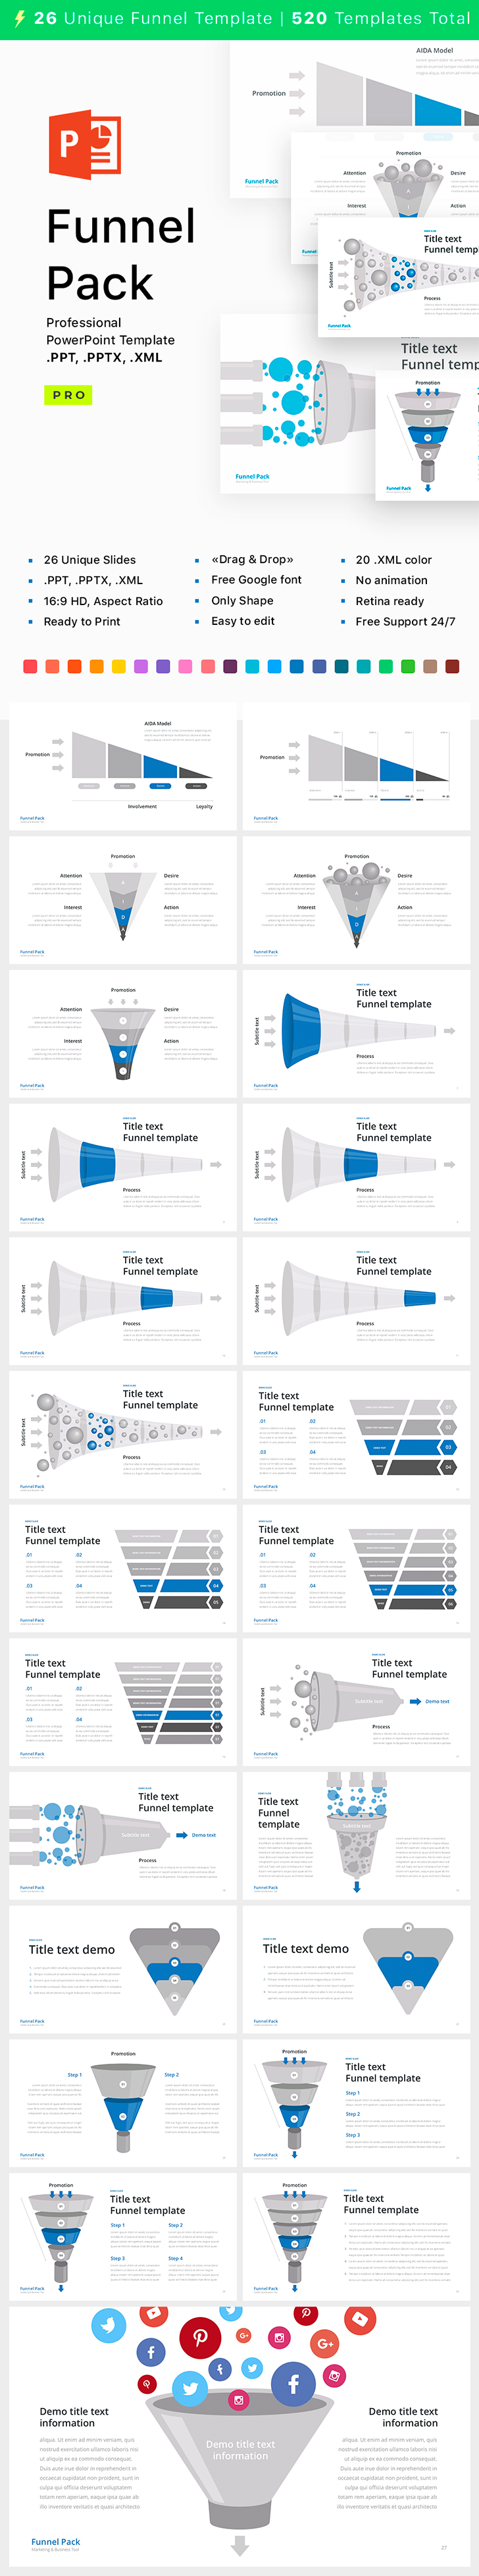 PowerPoint Funnel templates - 26 Unique templates, easy to edit .PPT ...